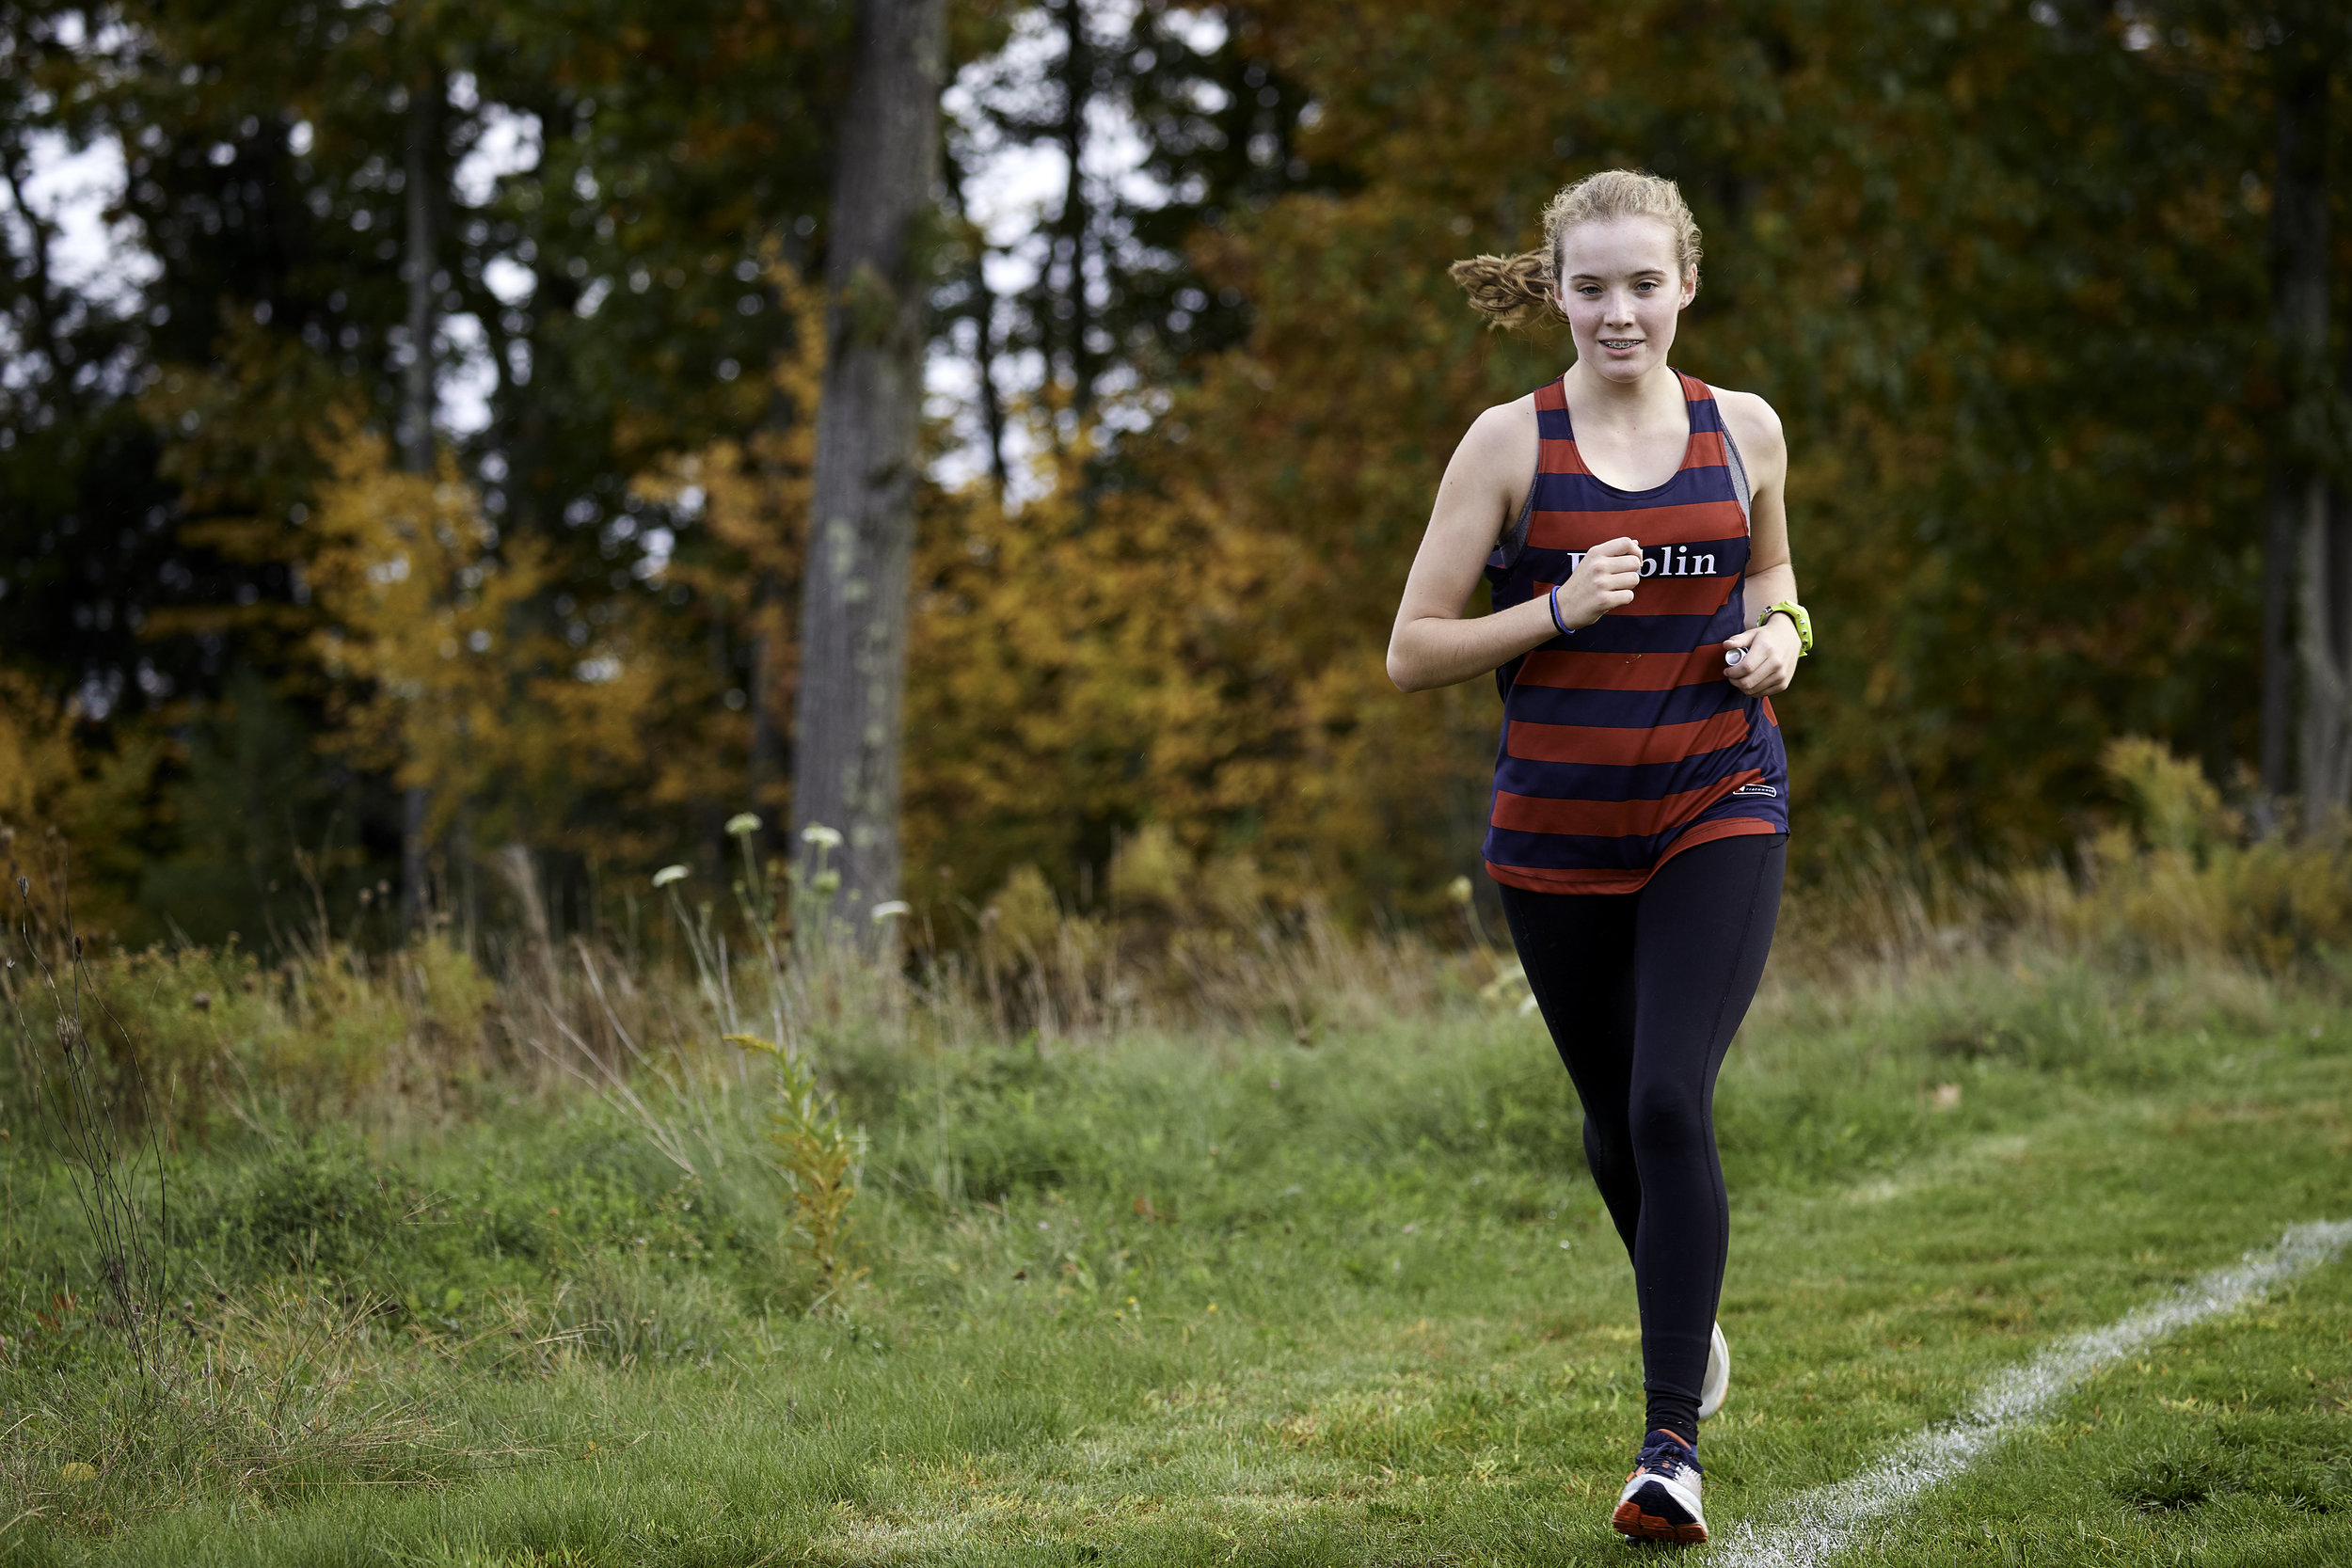 Dublion Invitational - October 12, 2018 - 136583.jpg